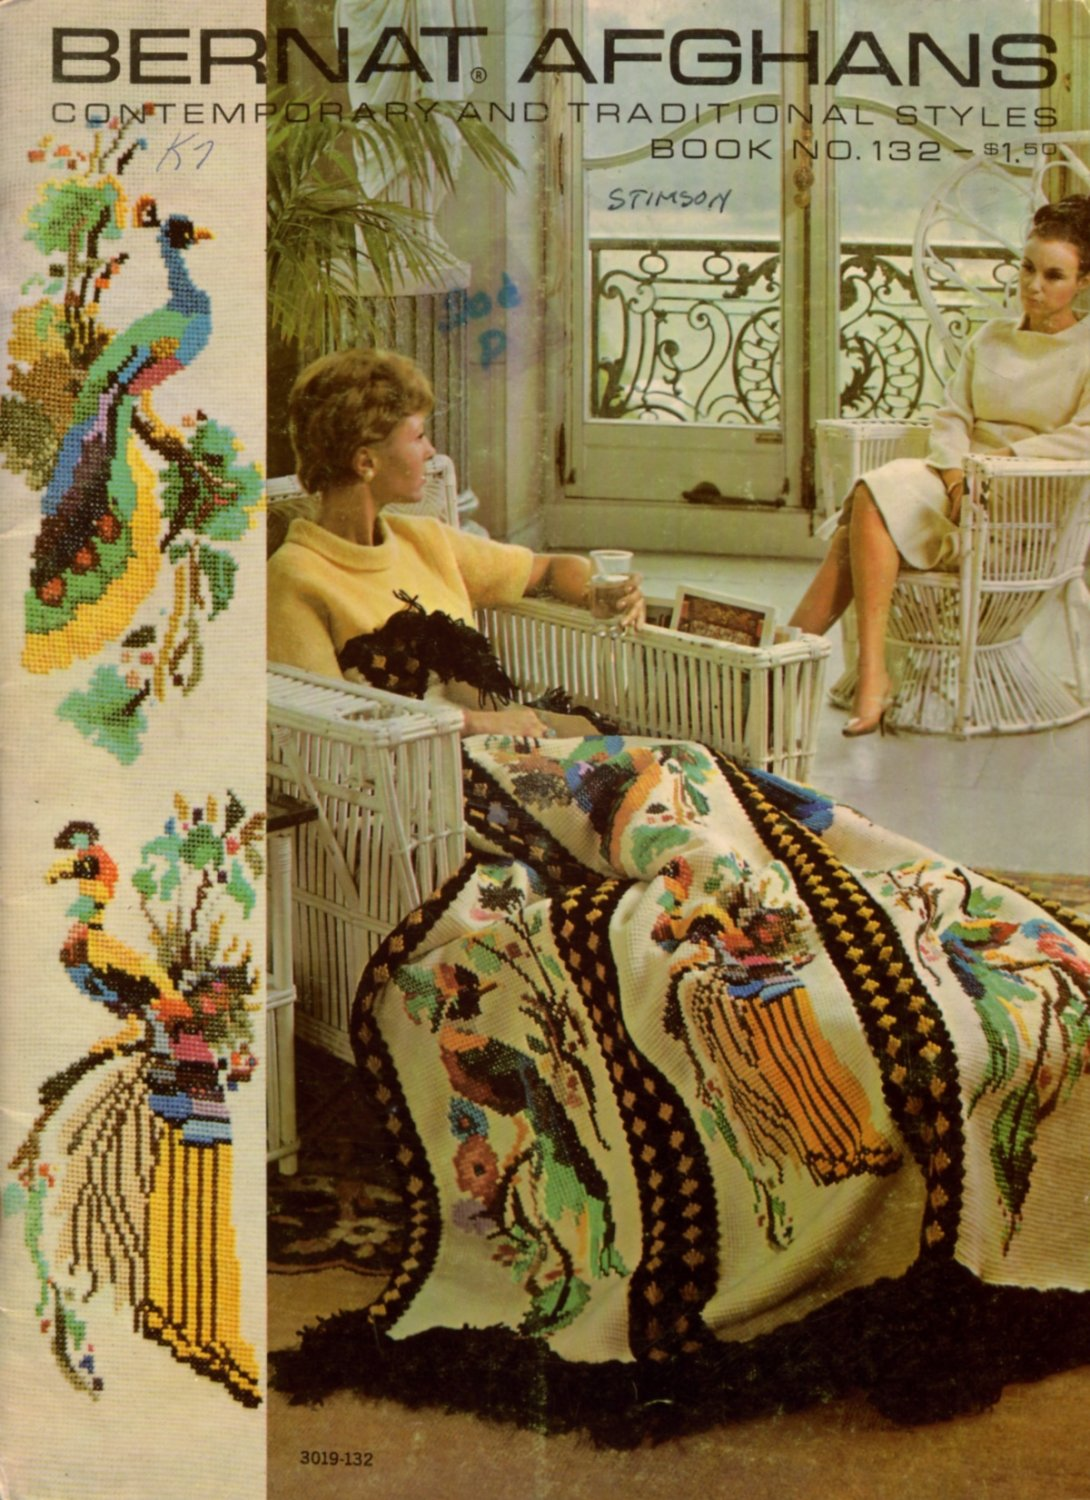 Vintage 60s Bernat AFGHANS Contemporary Traditional Styles 21 Knit Crochet Patterns